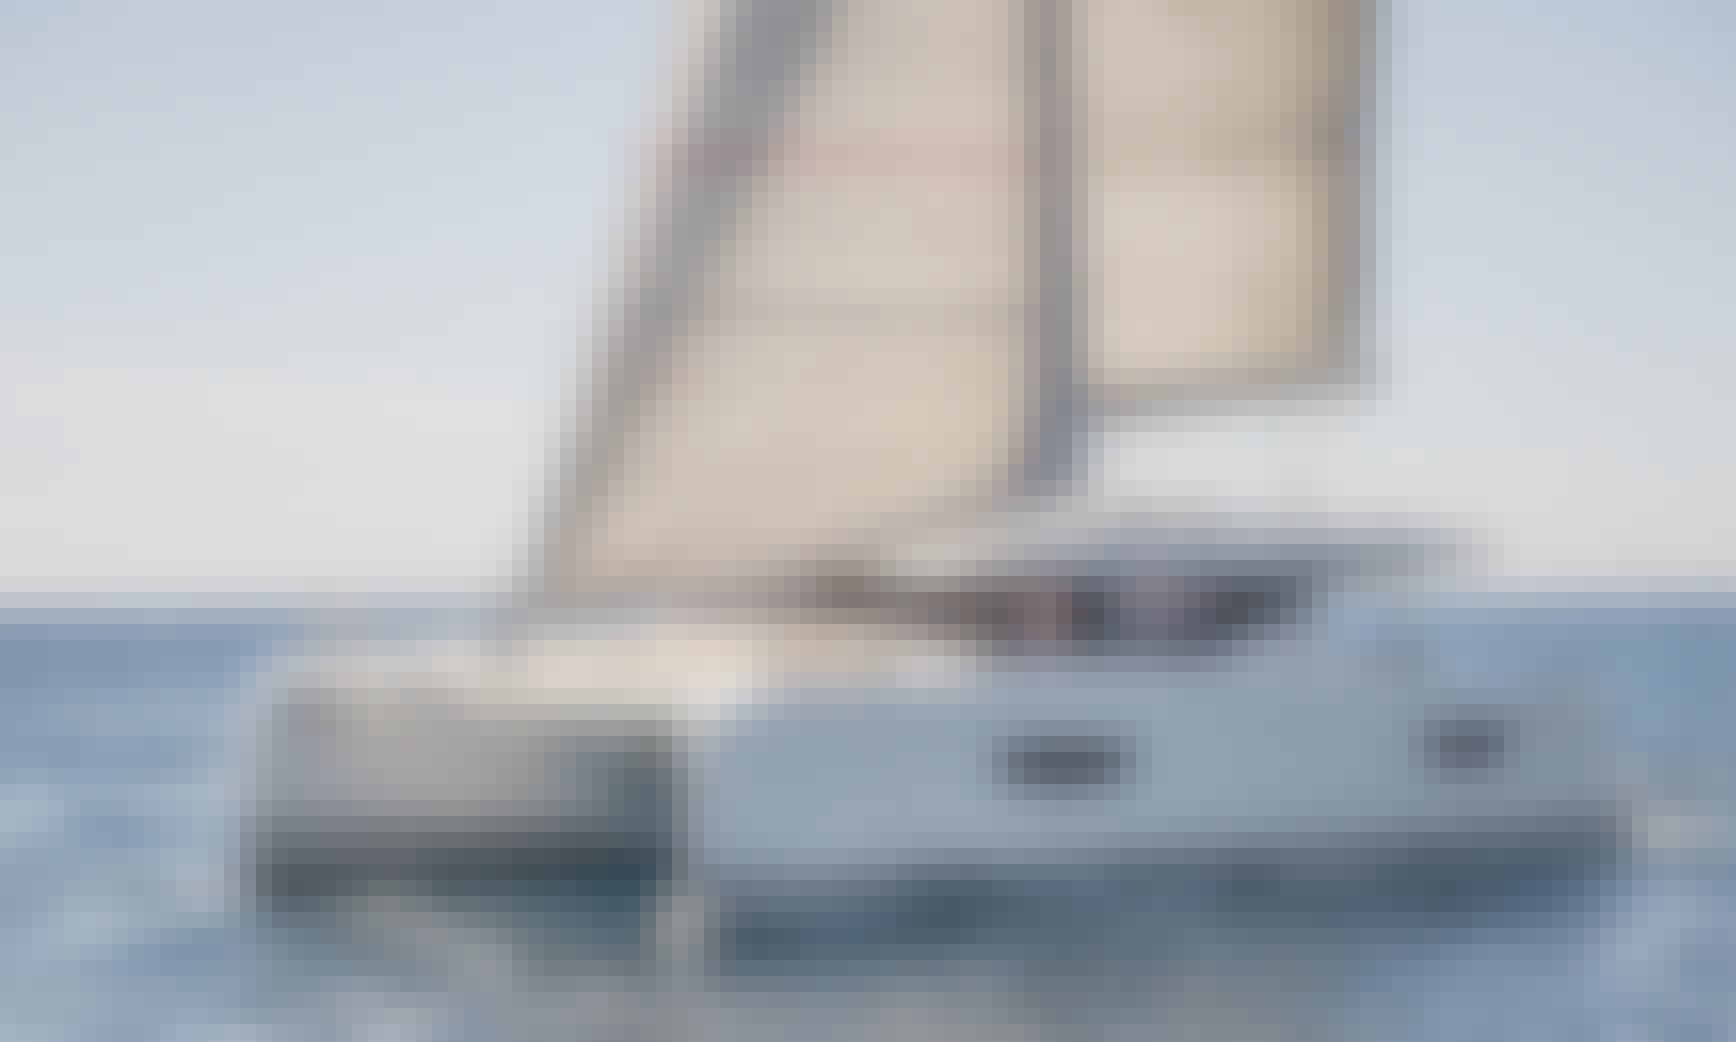 Charter the Fountaine Pajot, Astrea 42 for 12 people, Tortola, BVI